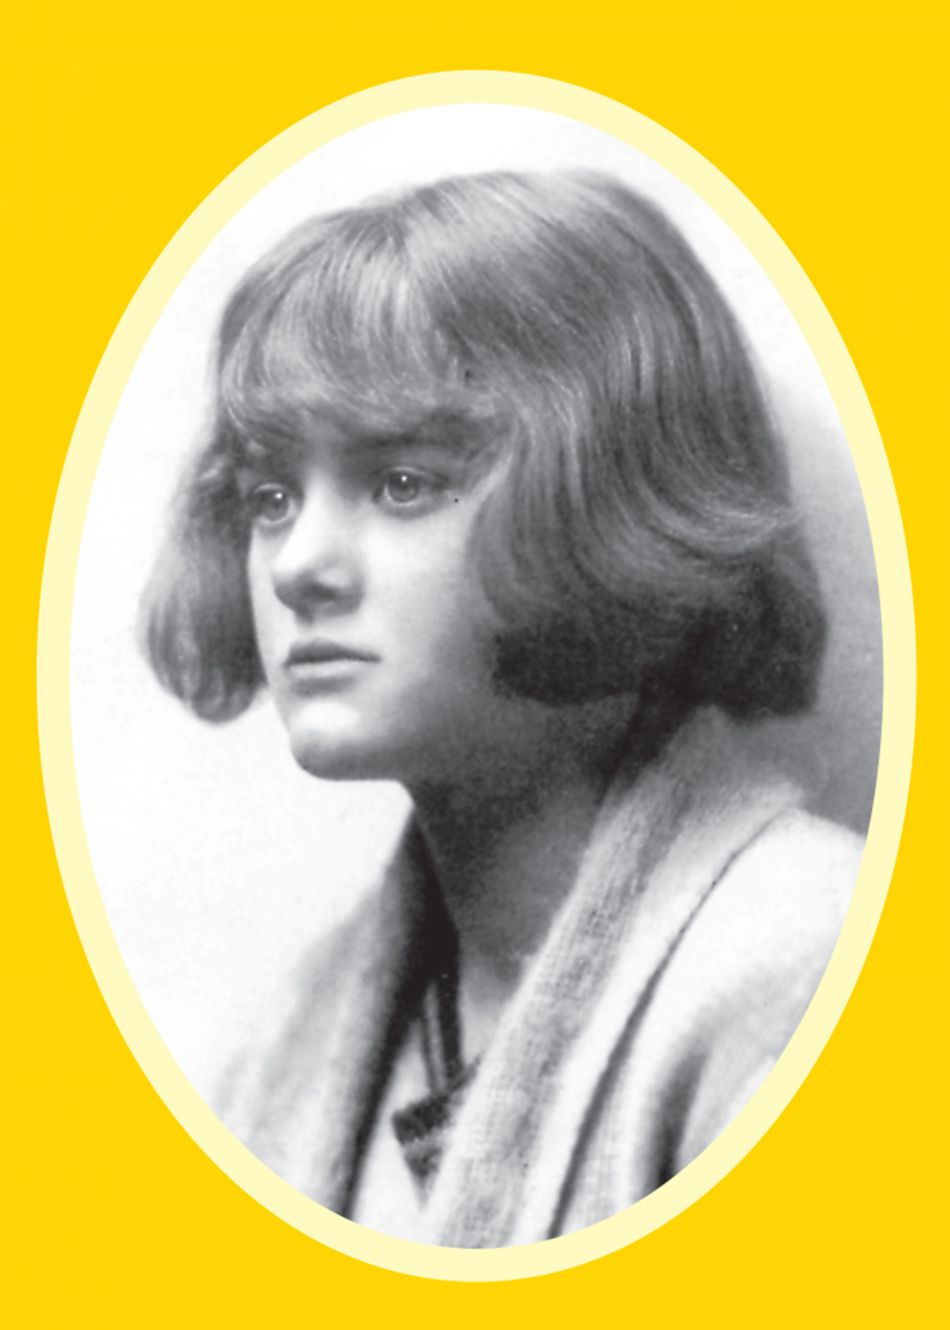 Daphne du Maurier as a young woman